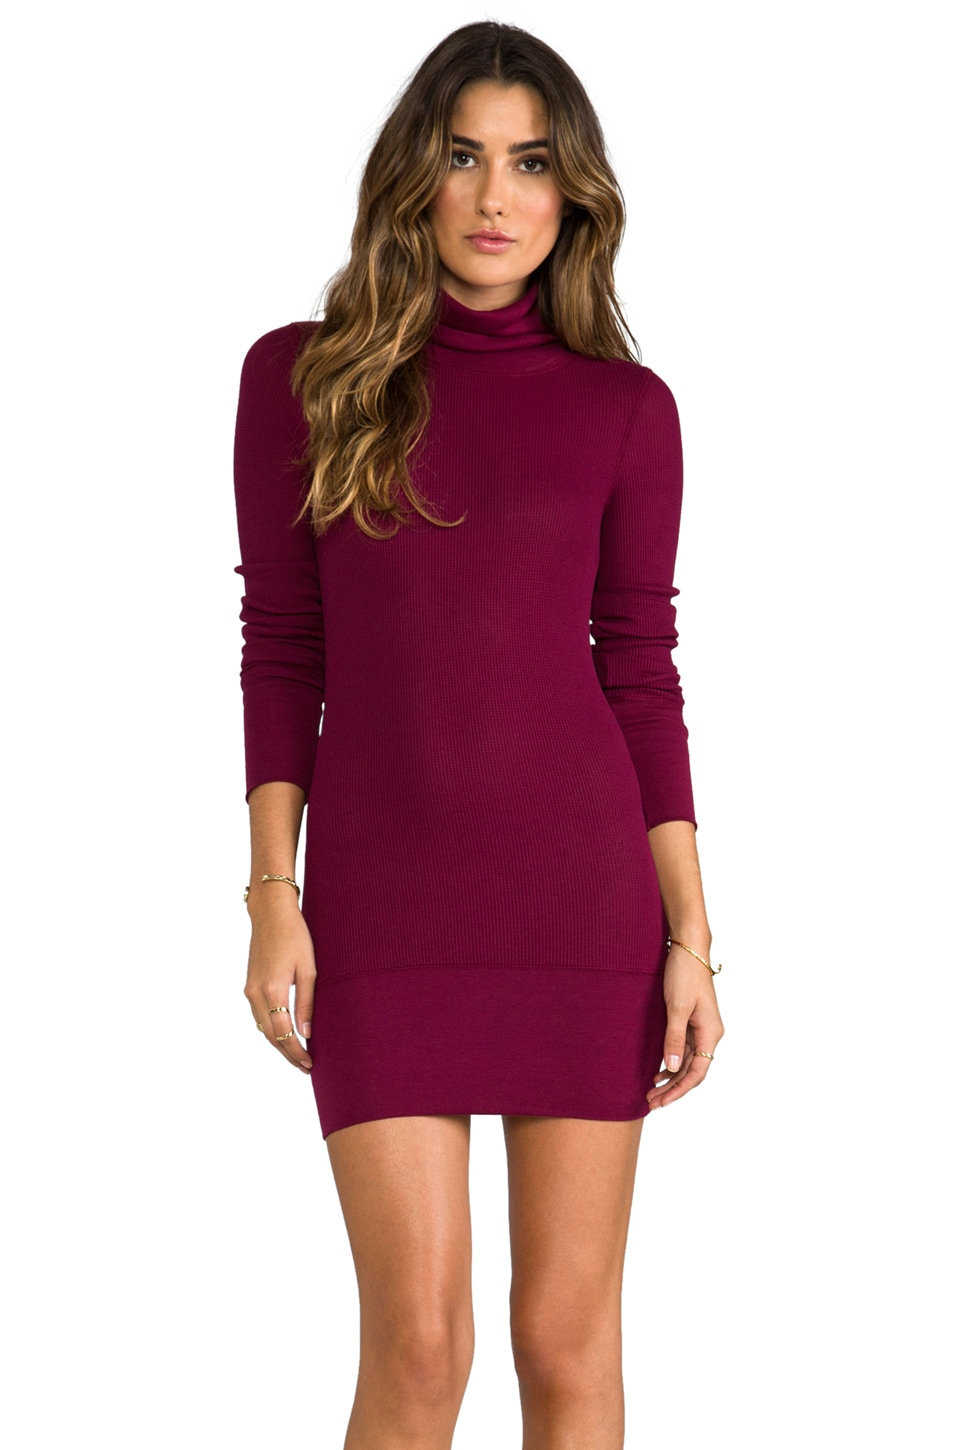 Bobi Thermal Turtleneck in Merlot